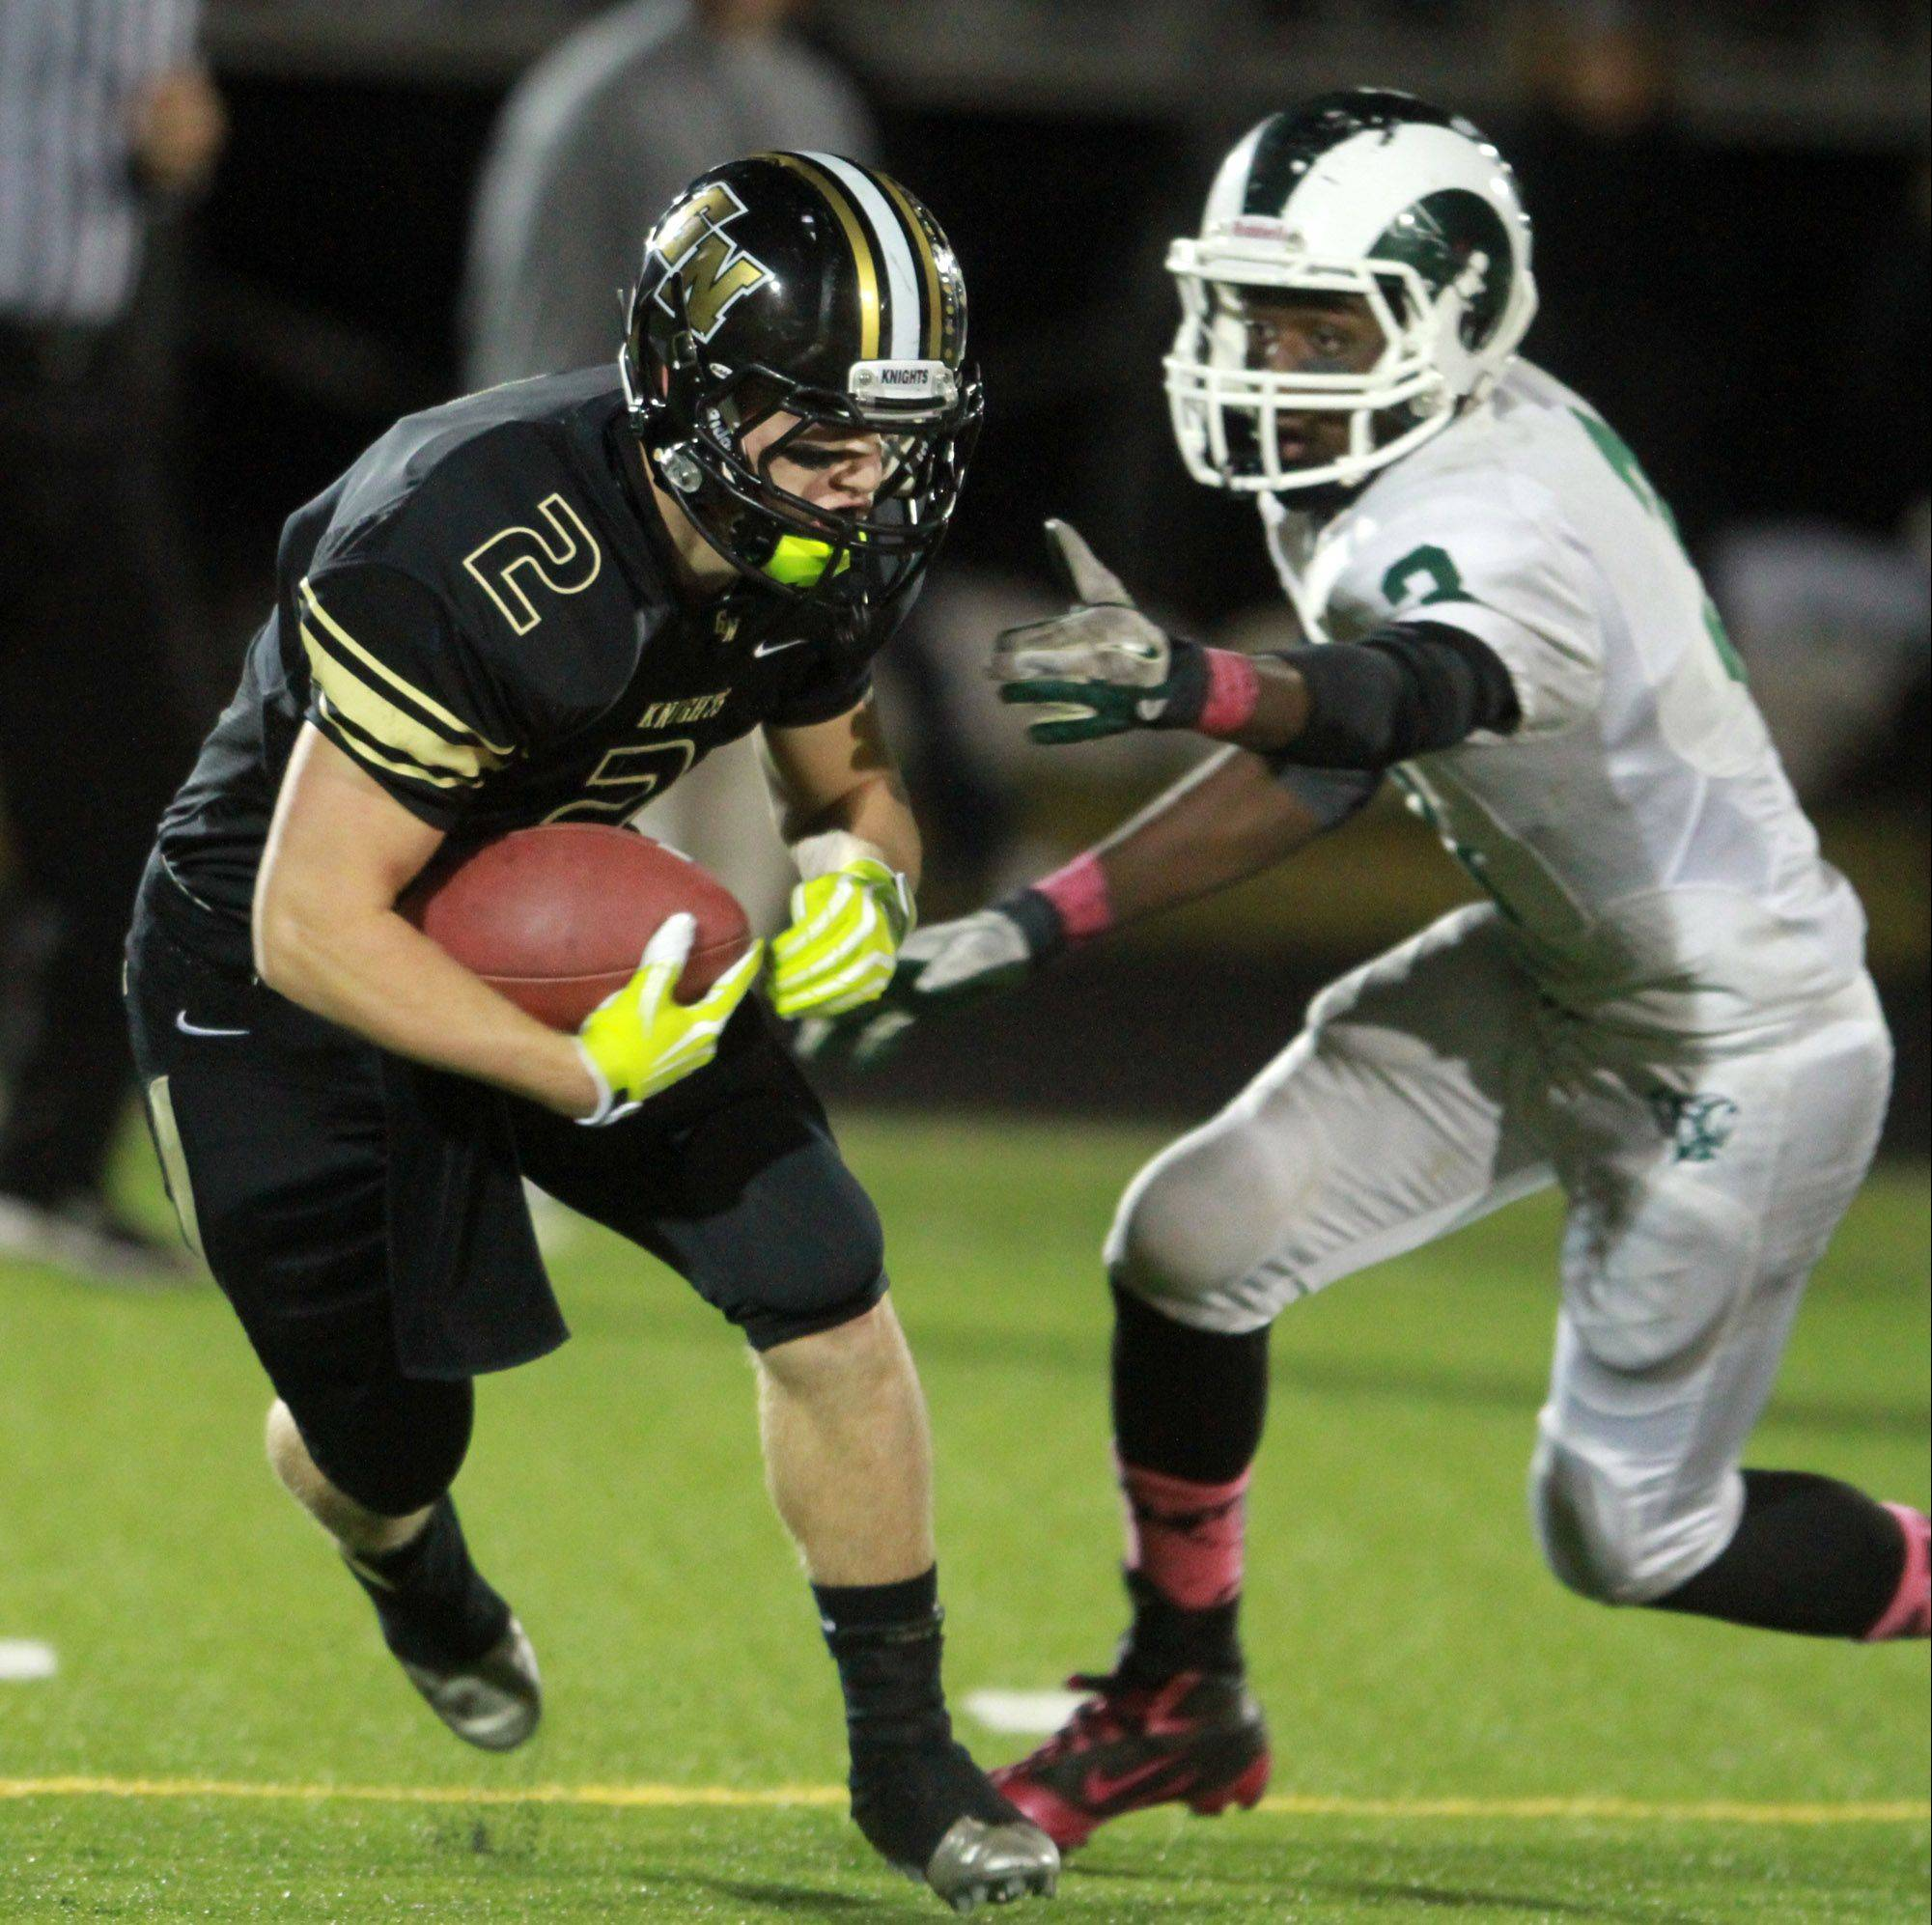 Grayslake North wide receiver Vincent Smith runs past Grayslake Central defender Davonta Jennings at Grayslake North on Friday.